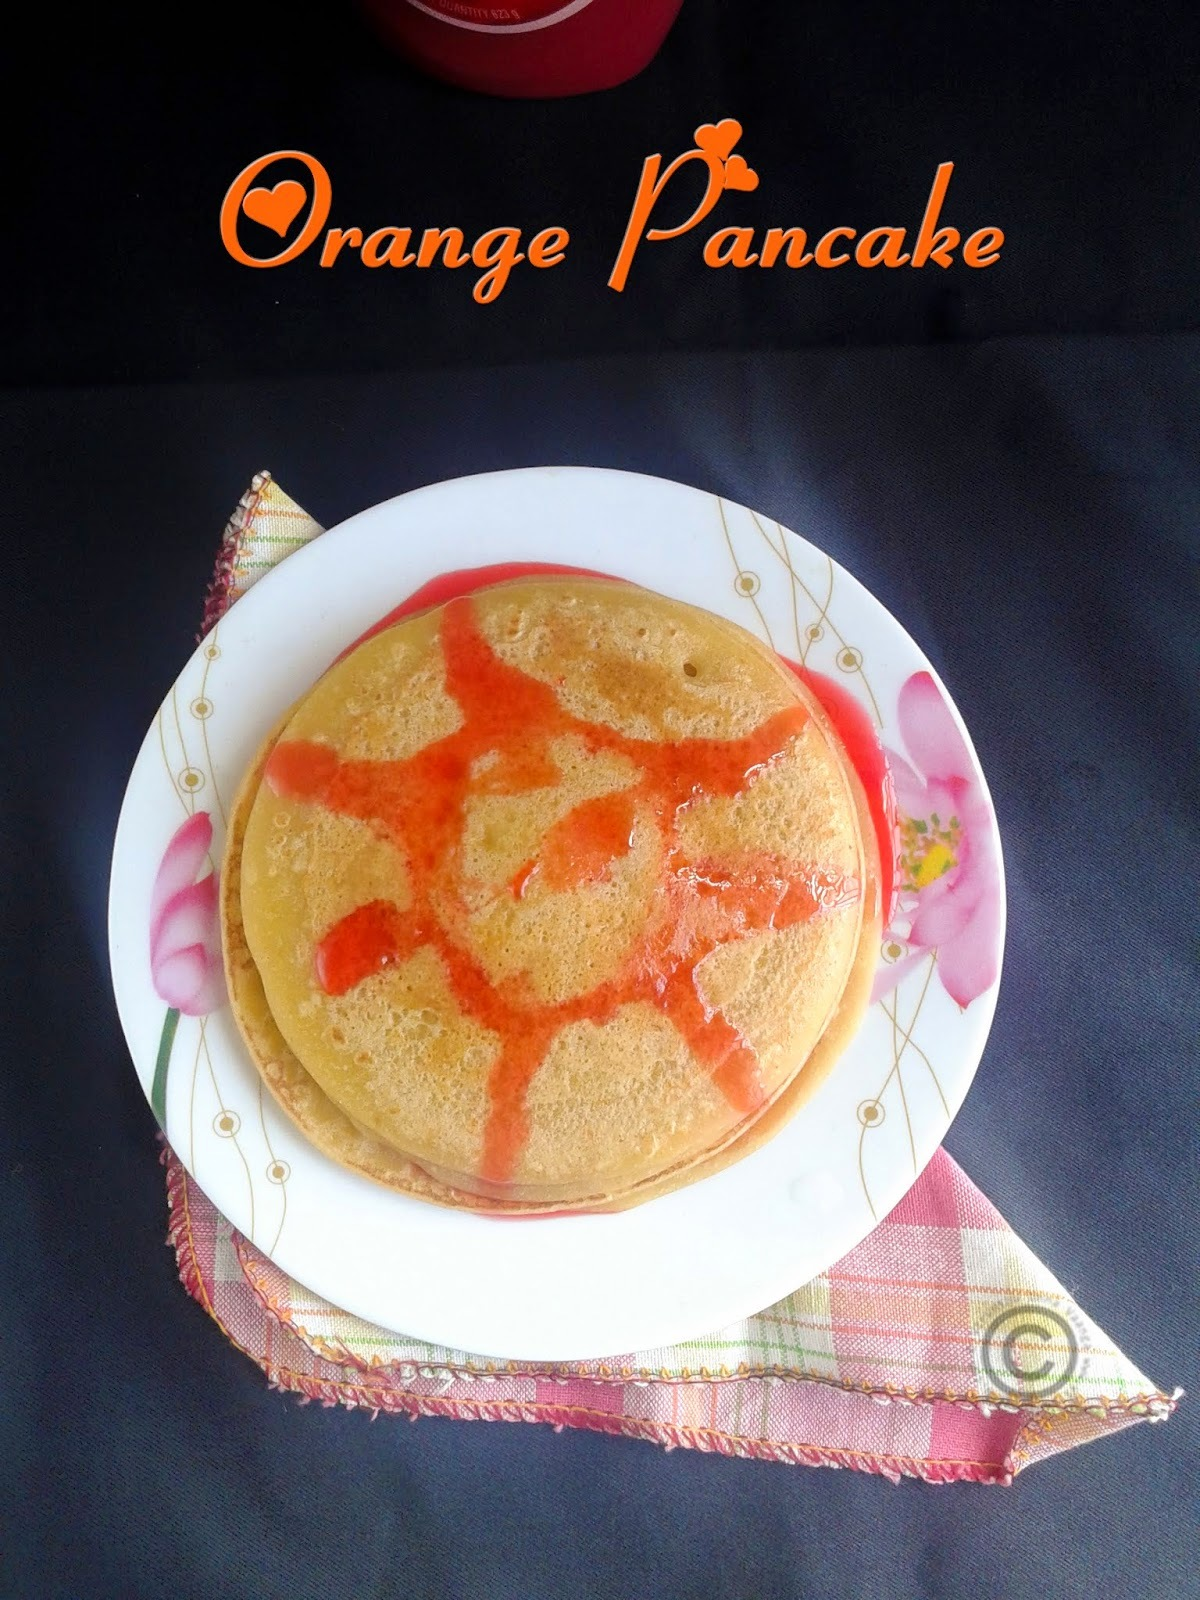 ORANGE PANCAKE - EGG LESS BUTTER LESS I FRUIT PANCAKE RECIPE I BREAKFAST RECIPES